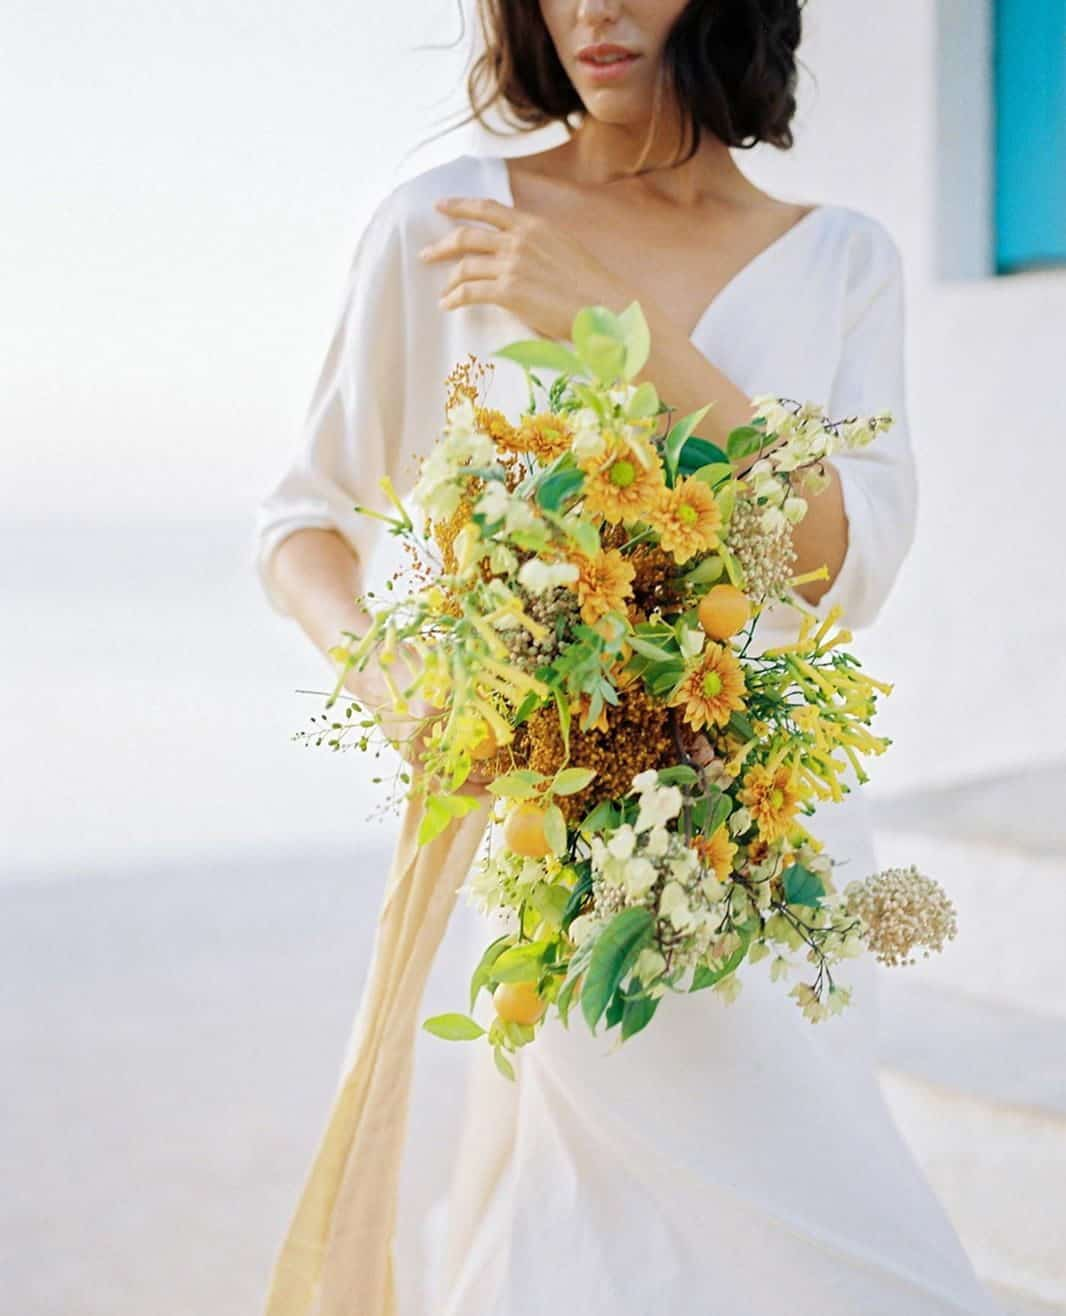 wedding bouquet with yellow chrysanthemums and citrus fruits